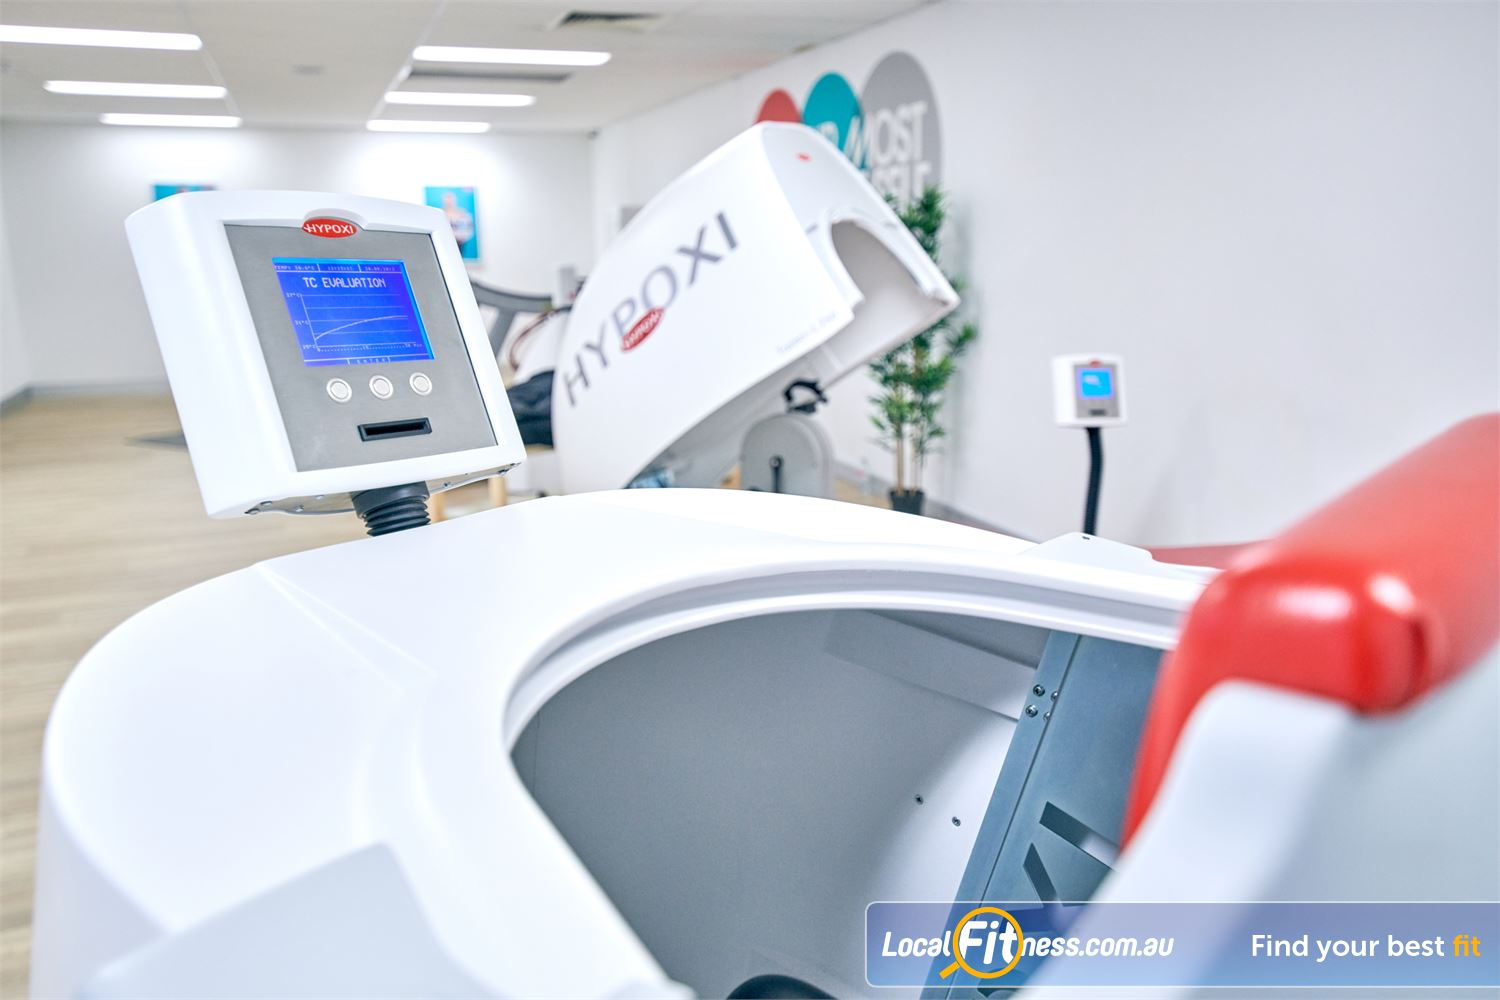 HYPOXI Weight Loss Near Manly Vale Our advanced technology provides targeted fat loss in Balgowlah.